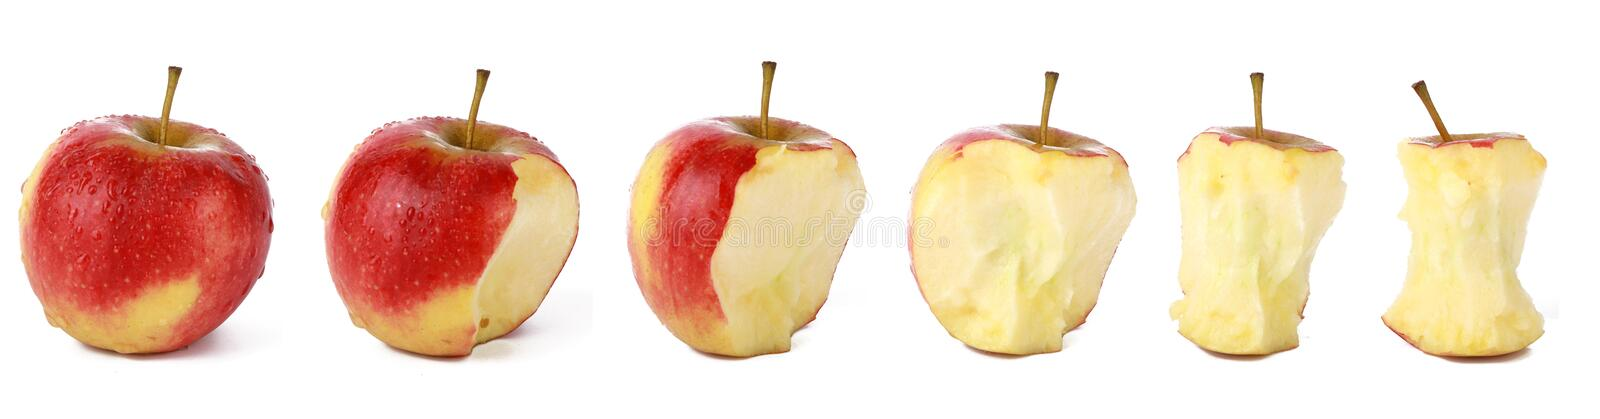 Fresh red natural aple is eaten - set of differents stages of eating an apple royalty free stock images